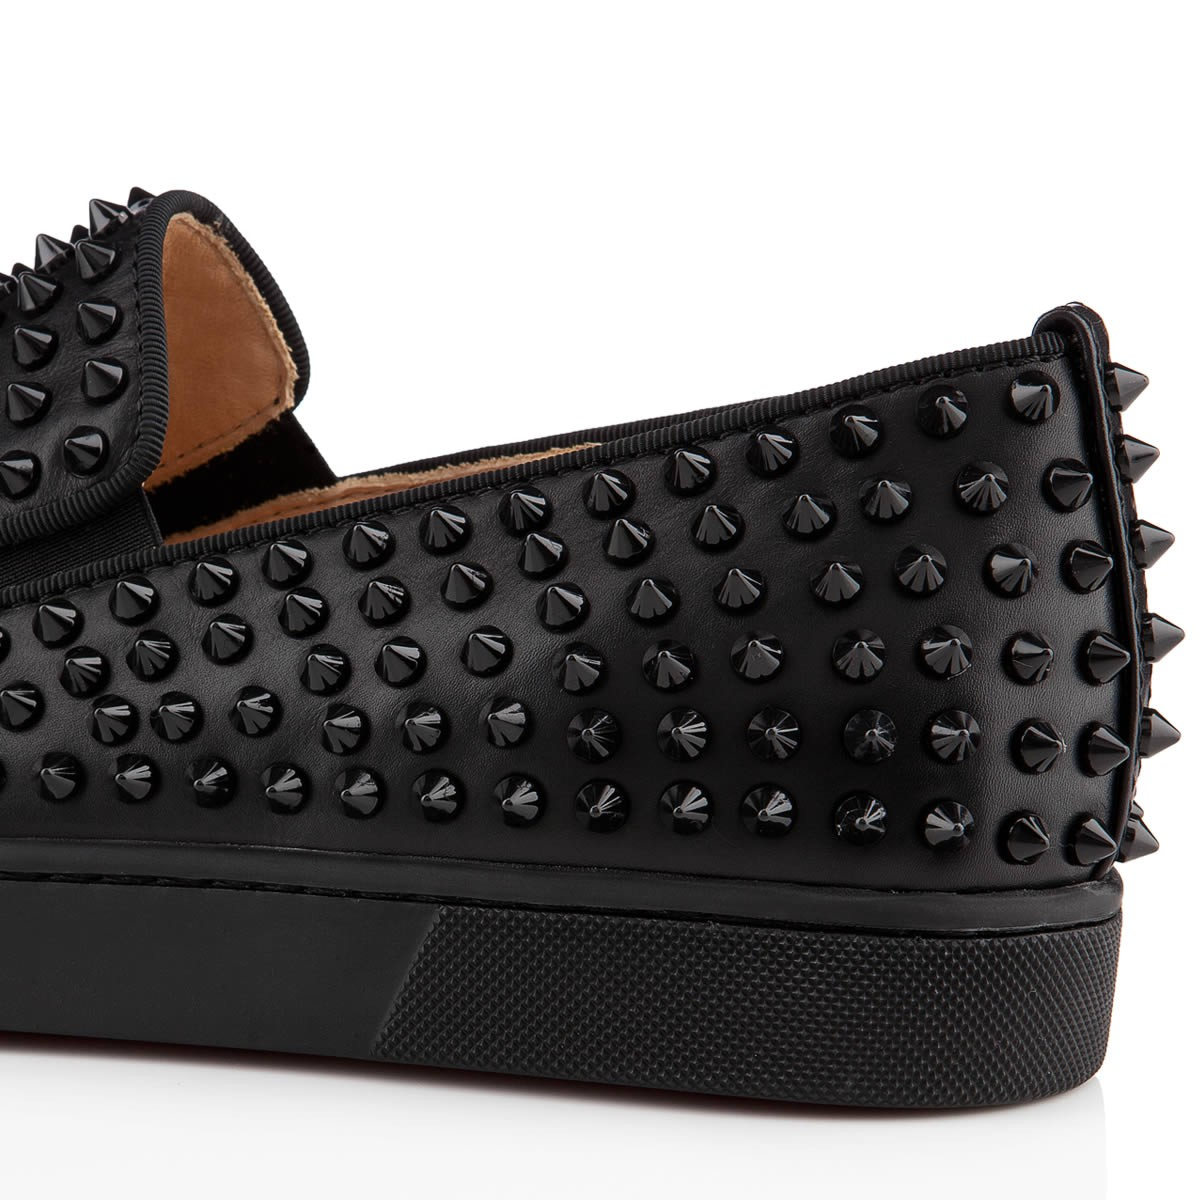 Shoes - Roller-boat Men's Flat - Christian Louboutin